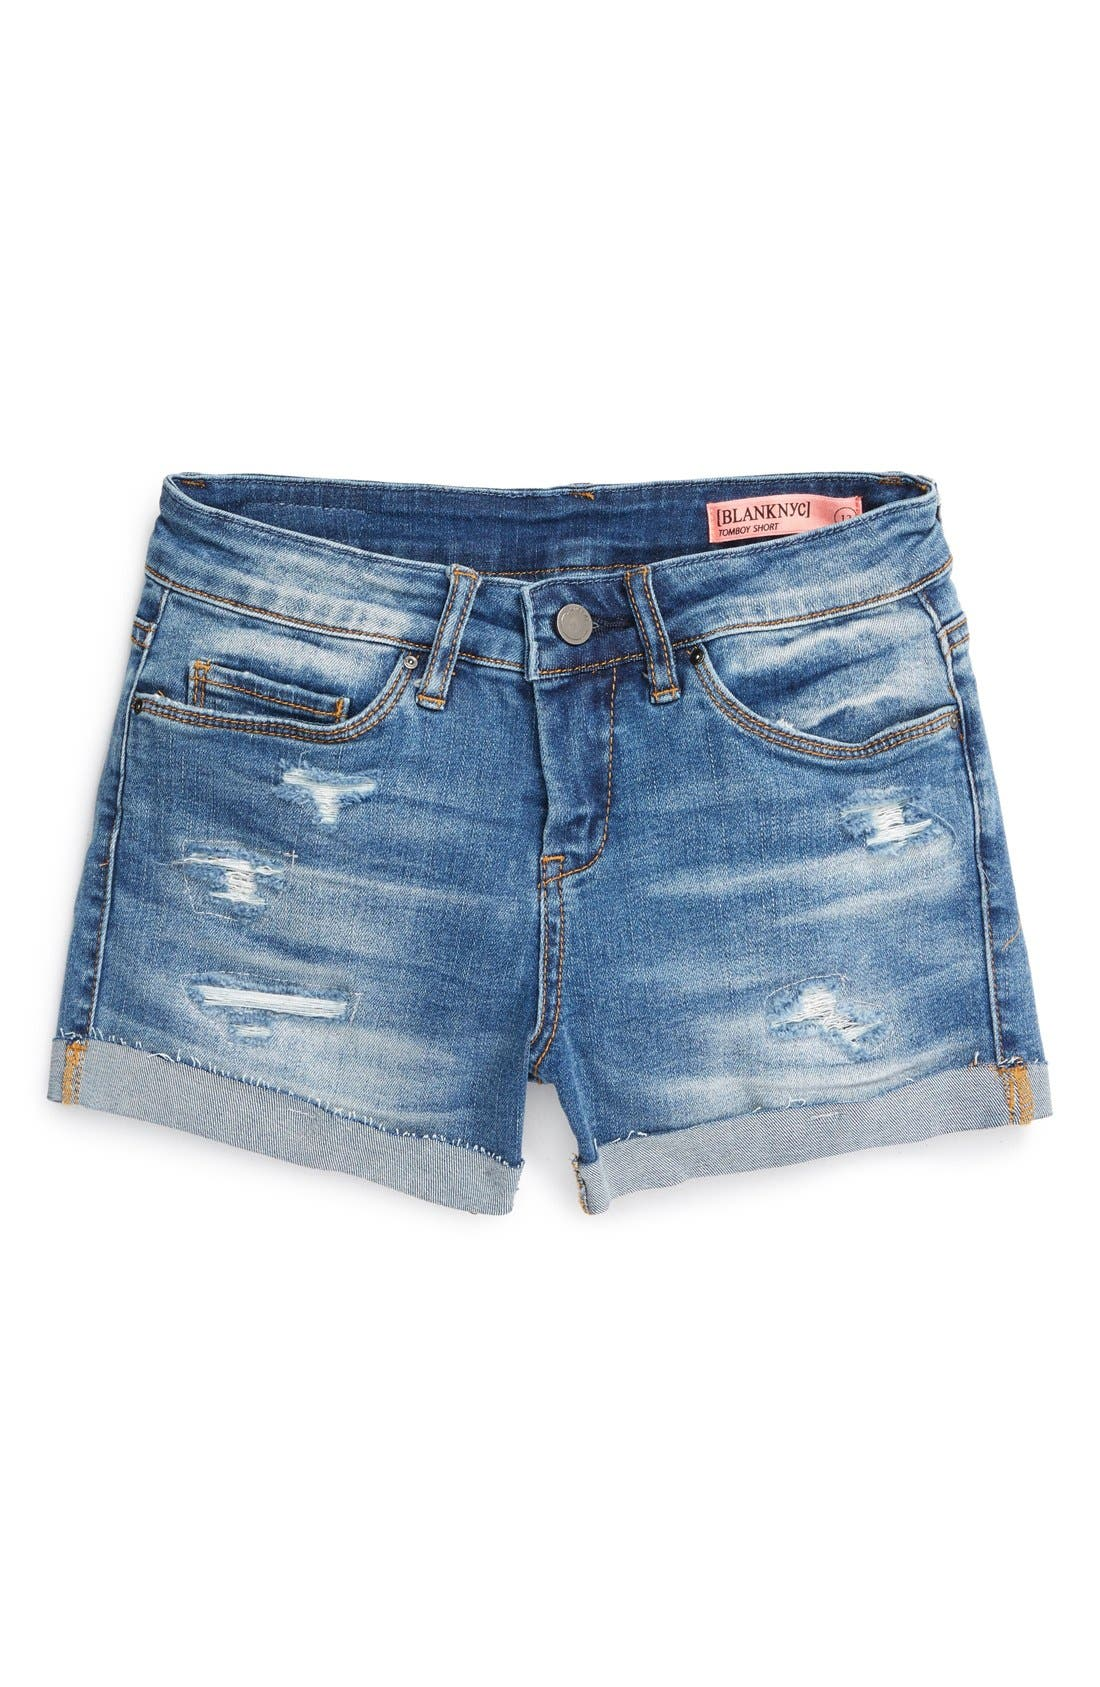 Distressed Roll Cuff Shorts,                             Main thumbnail 1, color,                             400